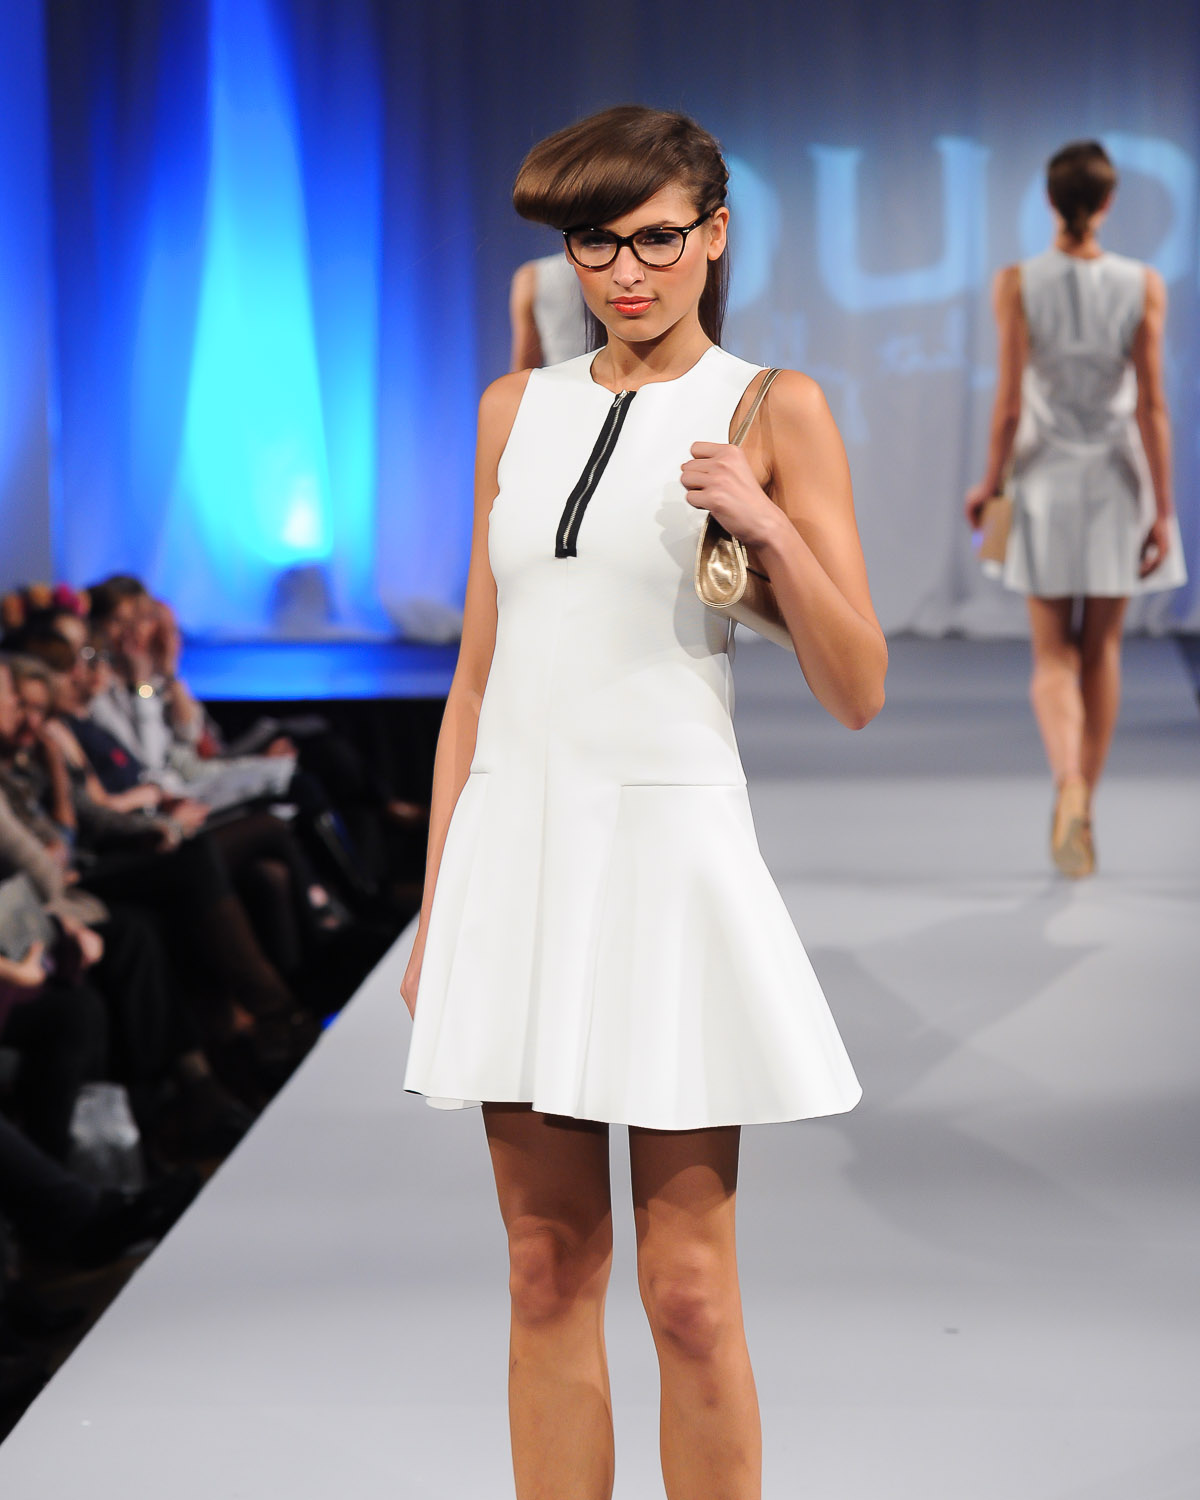 bath-in-fashion-spring-summer-14.jpg